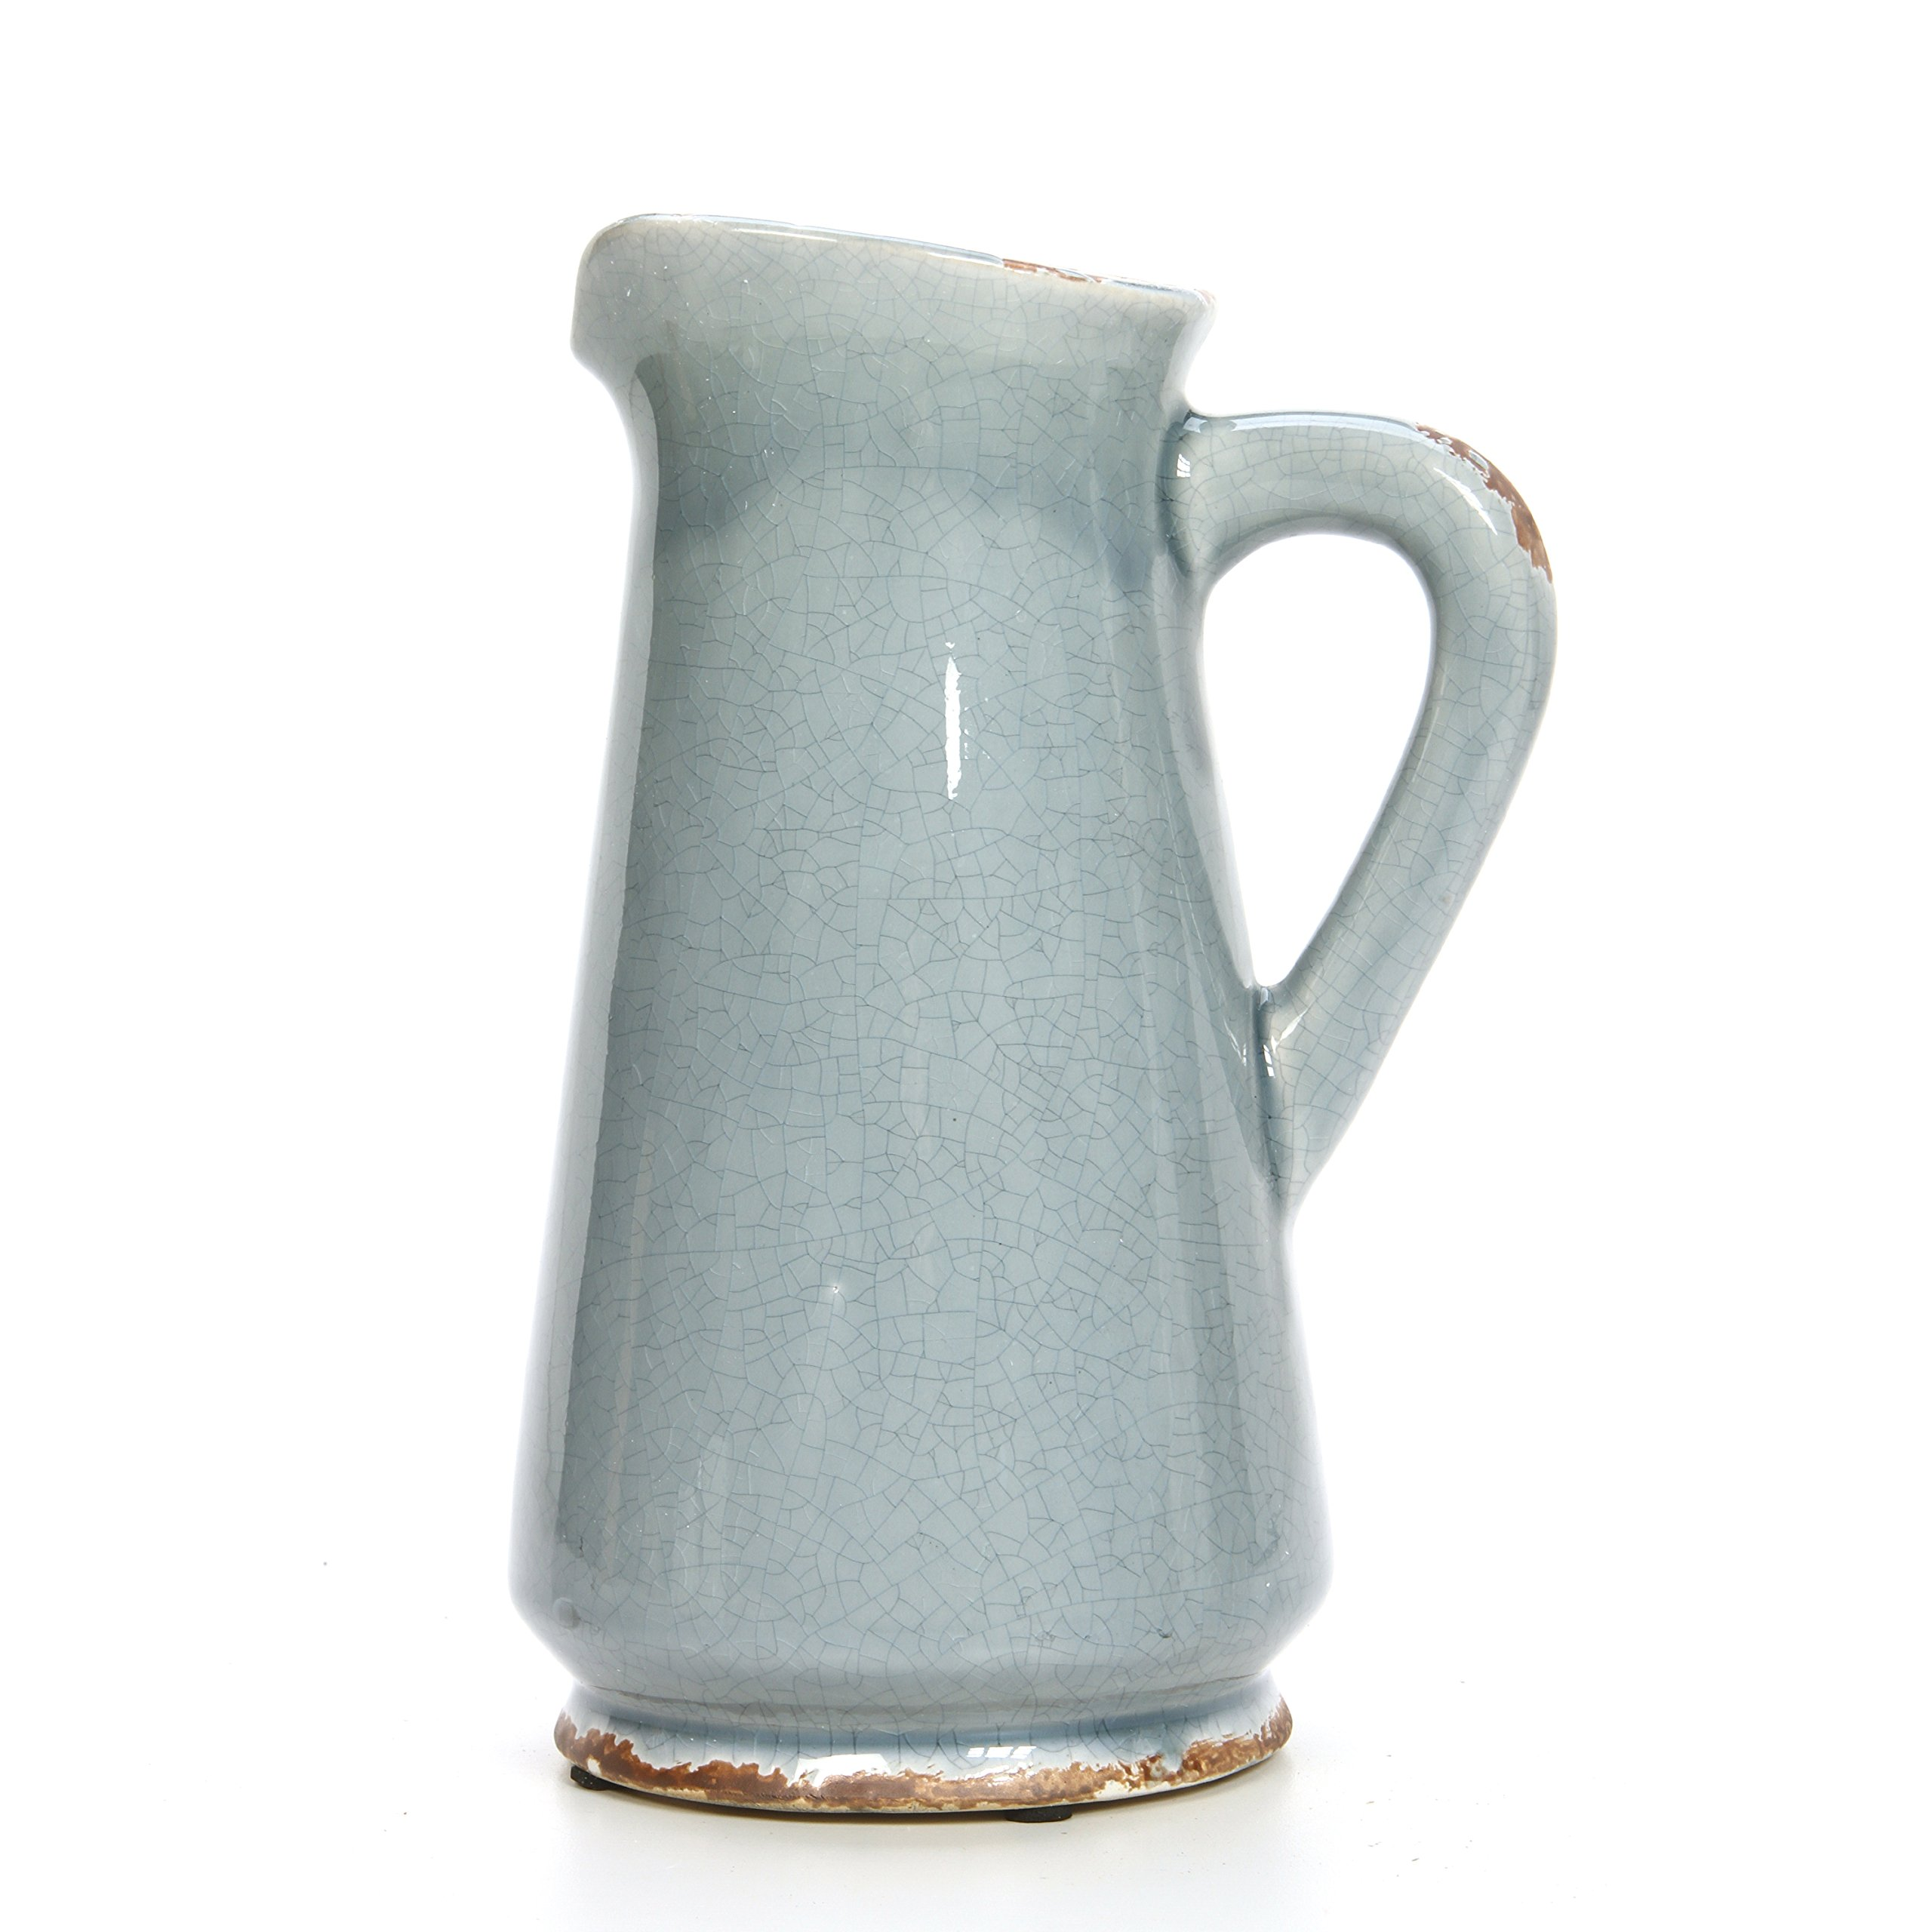 Hosley 10'' High, Blue Ceramic Pitcher/Vase. Ideal Gift for Weddings, Special Occasions, Garden Setting, Home/Office Decor, Dried Floral Arrangements, Spa, Aromatherapy Settings O5 by Hosley